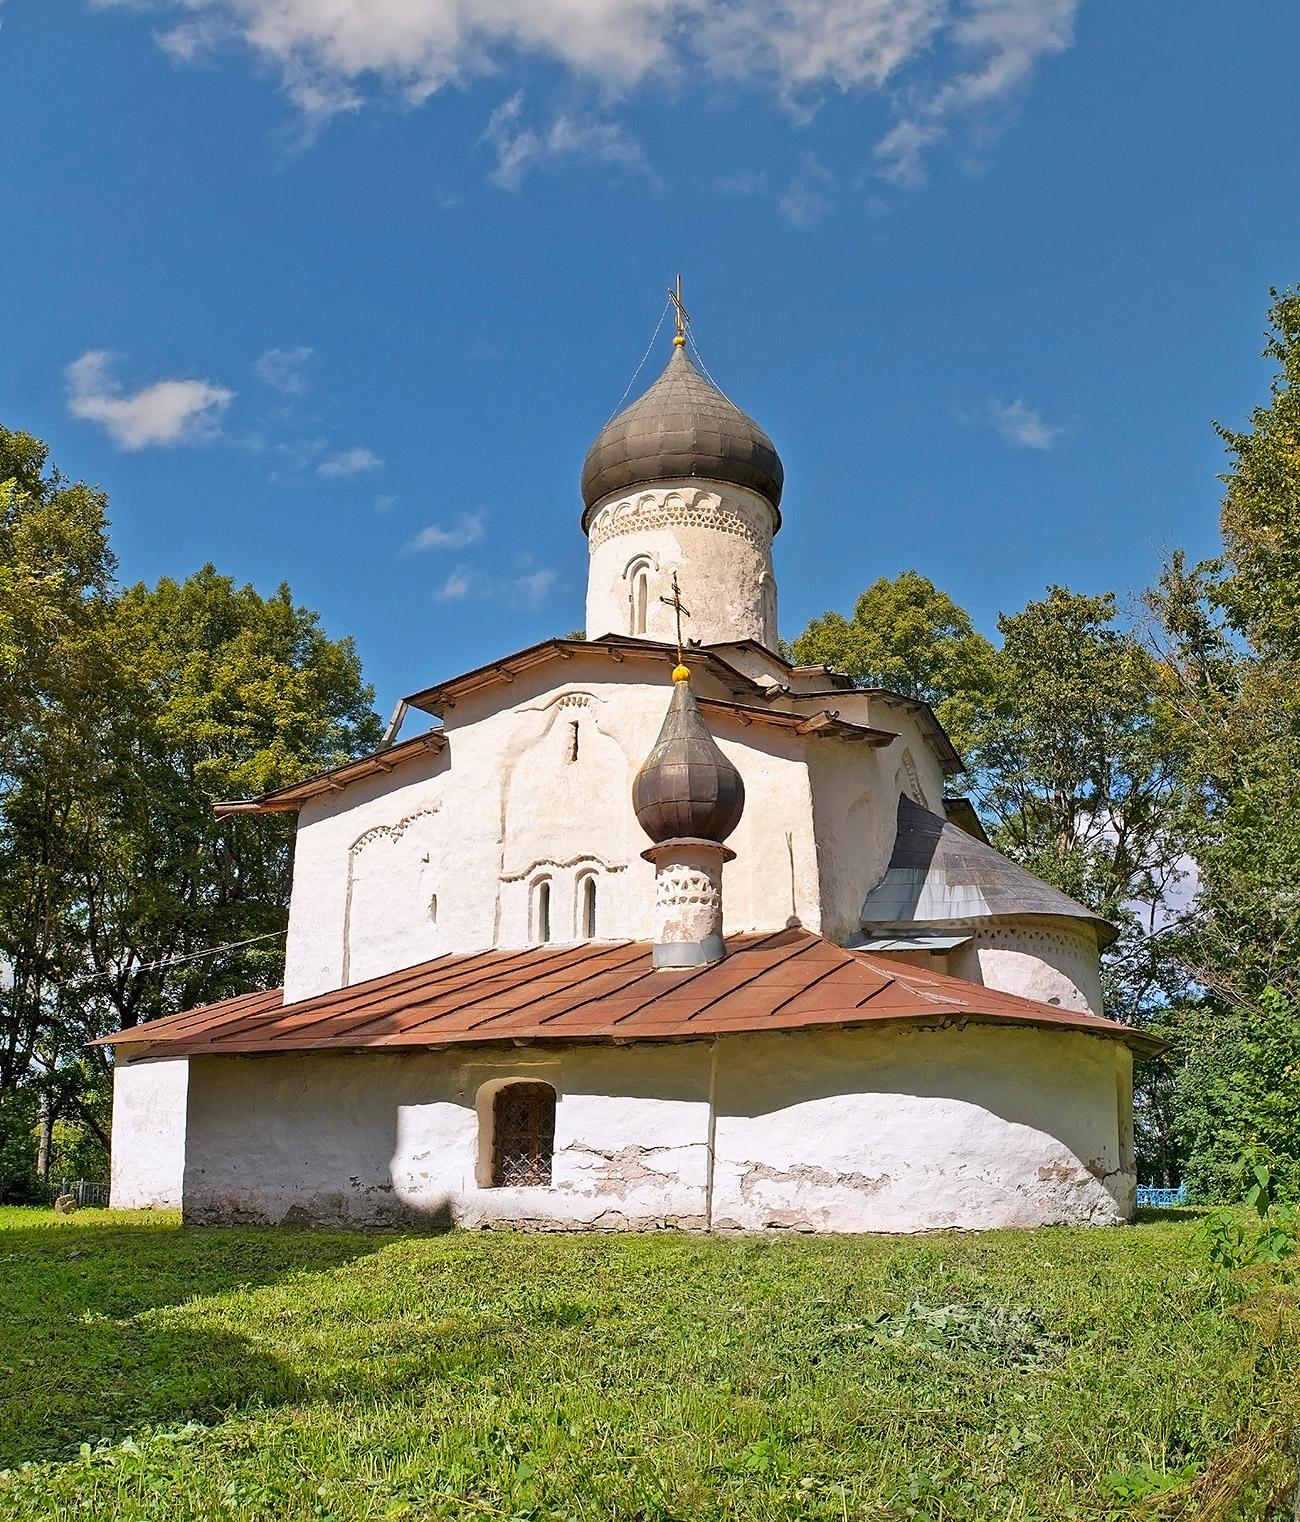 This year, the Grabar Center is busy raising funds for the restoration of another church in a bad condition - the Church of the Assumption of the Virgin in the village of Meletovo near Pskov. The church is in dire need of restoration.